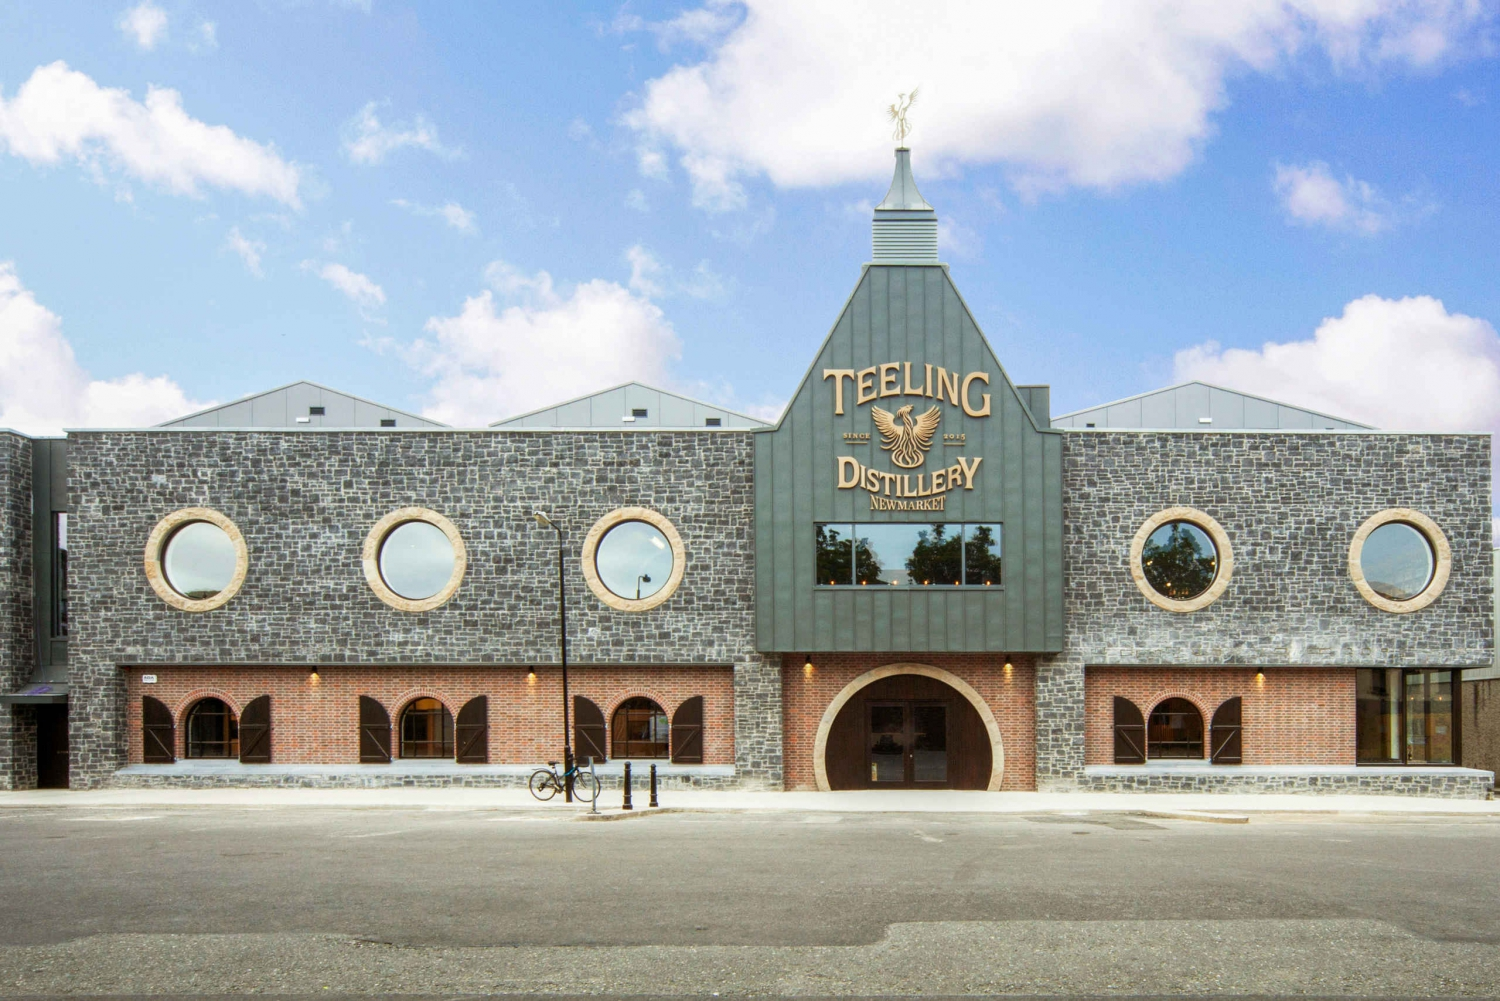 Teeling Whiskey Distillery Tour & Tasting